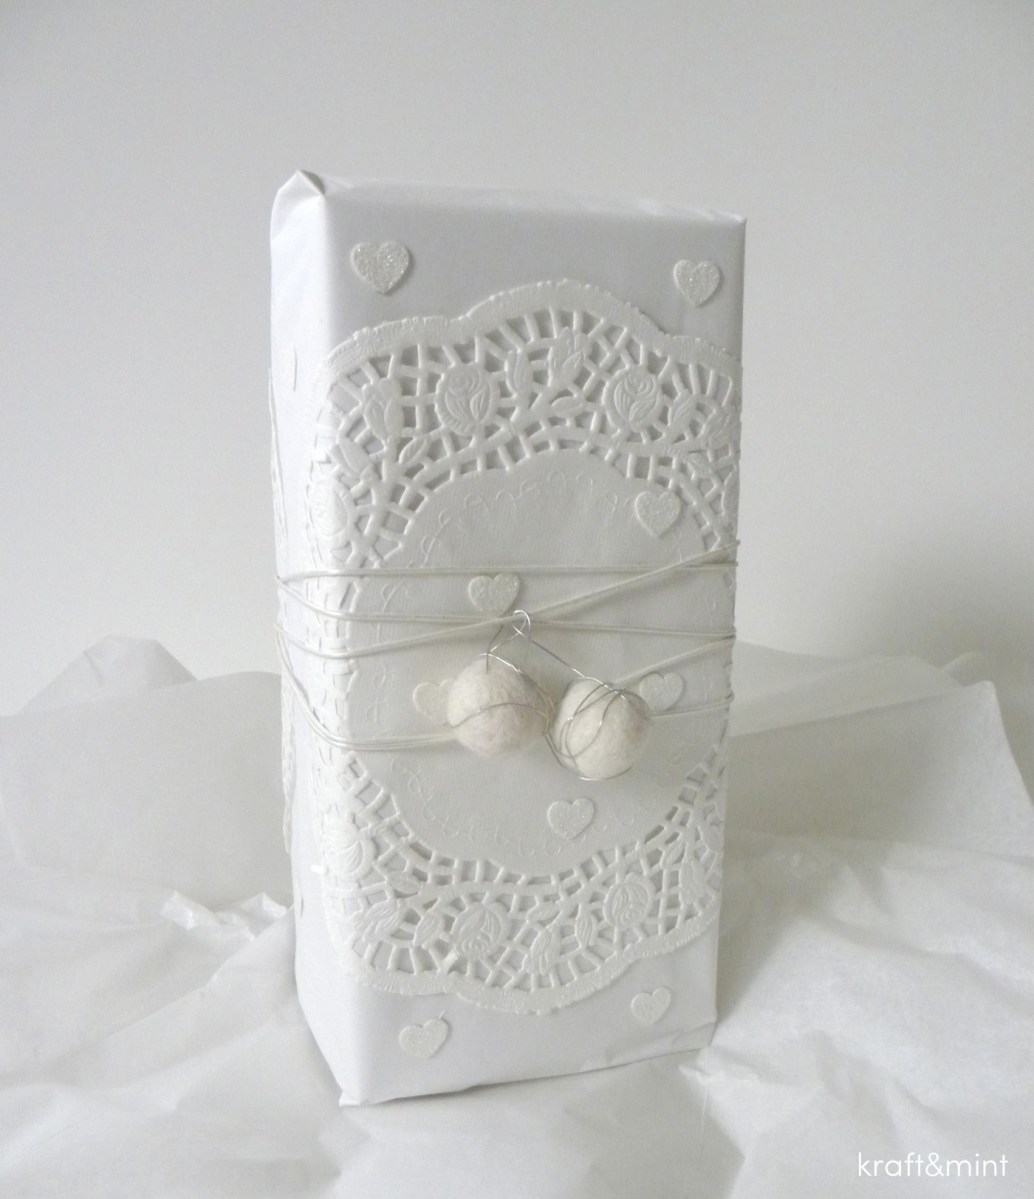 Inspiration: White & White Gifts for Christmas